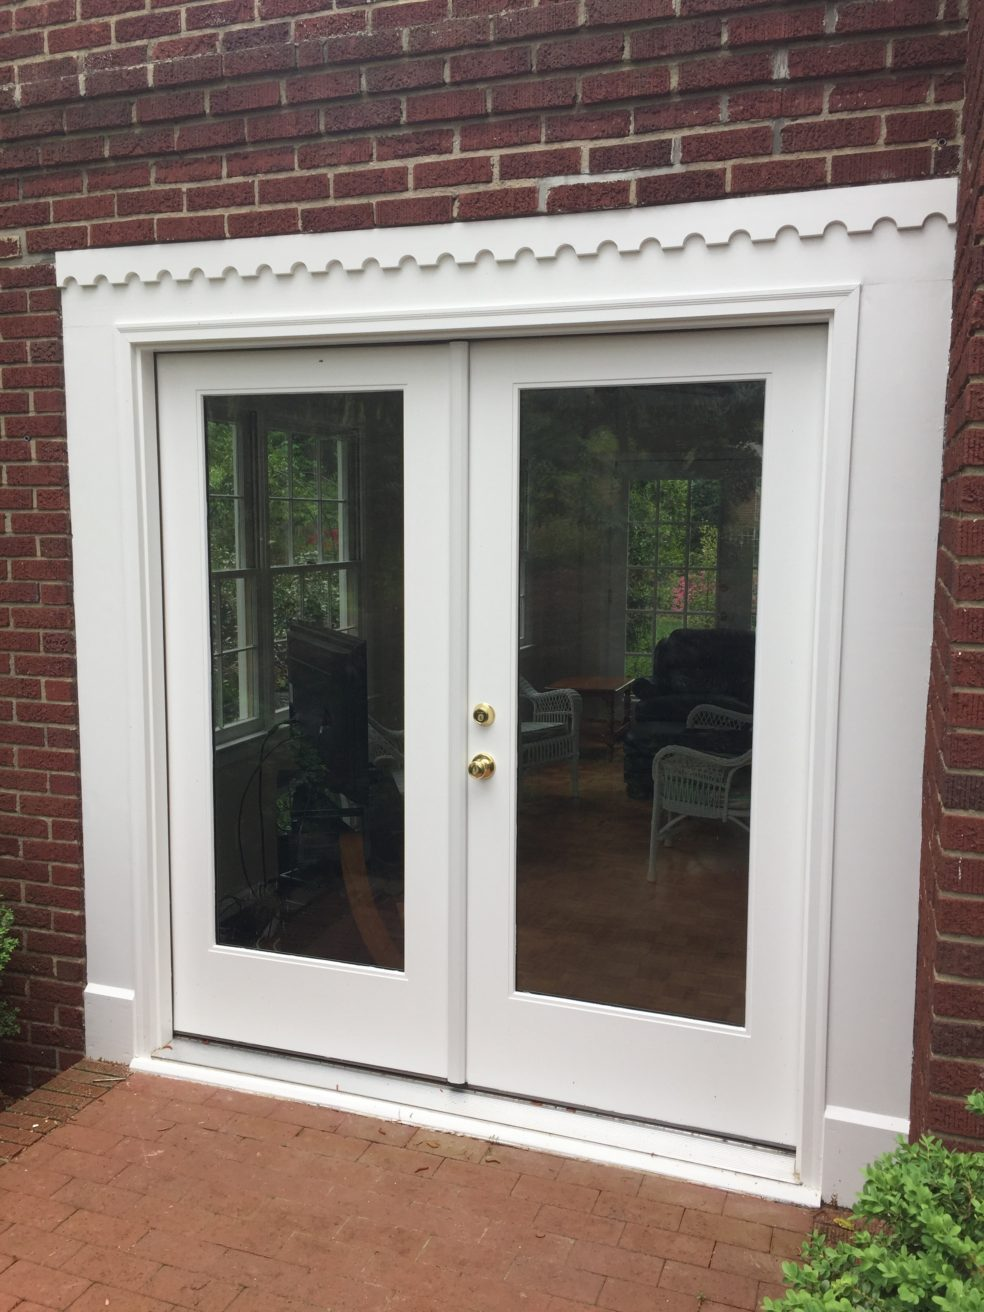 This client is an old friend who wanted to replace a very old set of French doors. It was a fairly straightforward project but with a few challenges. & New French Doors \u0026 Trim! | Old Raleigh Carpentry